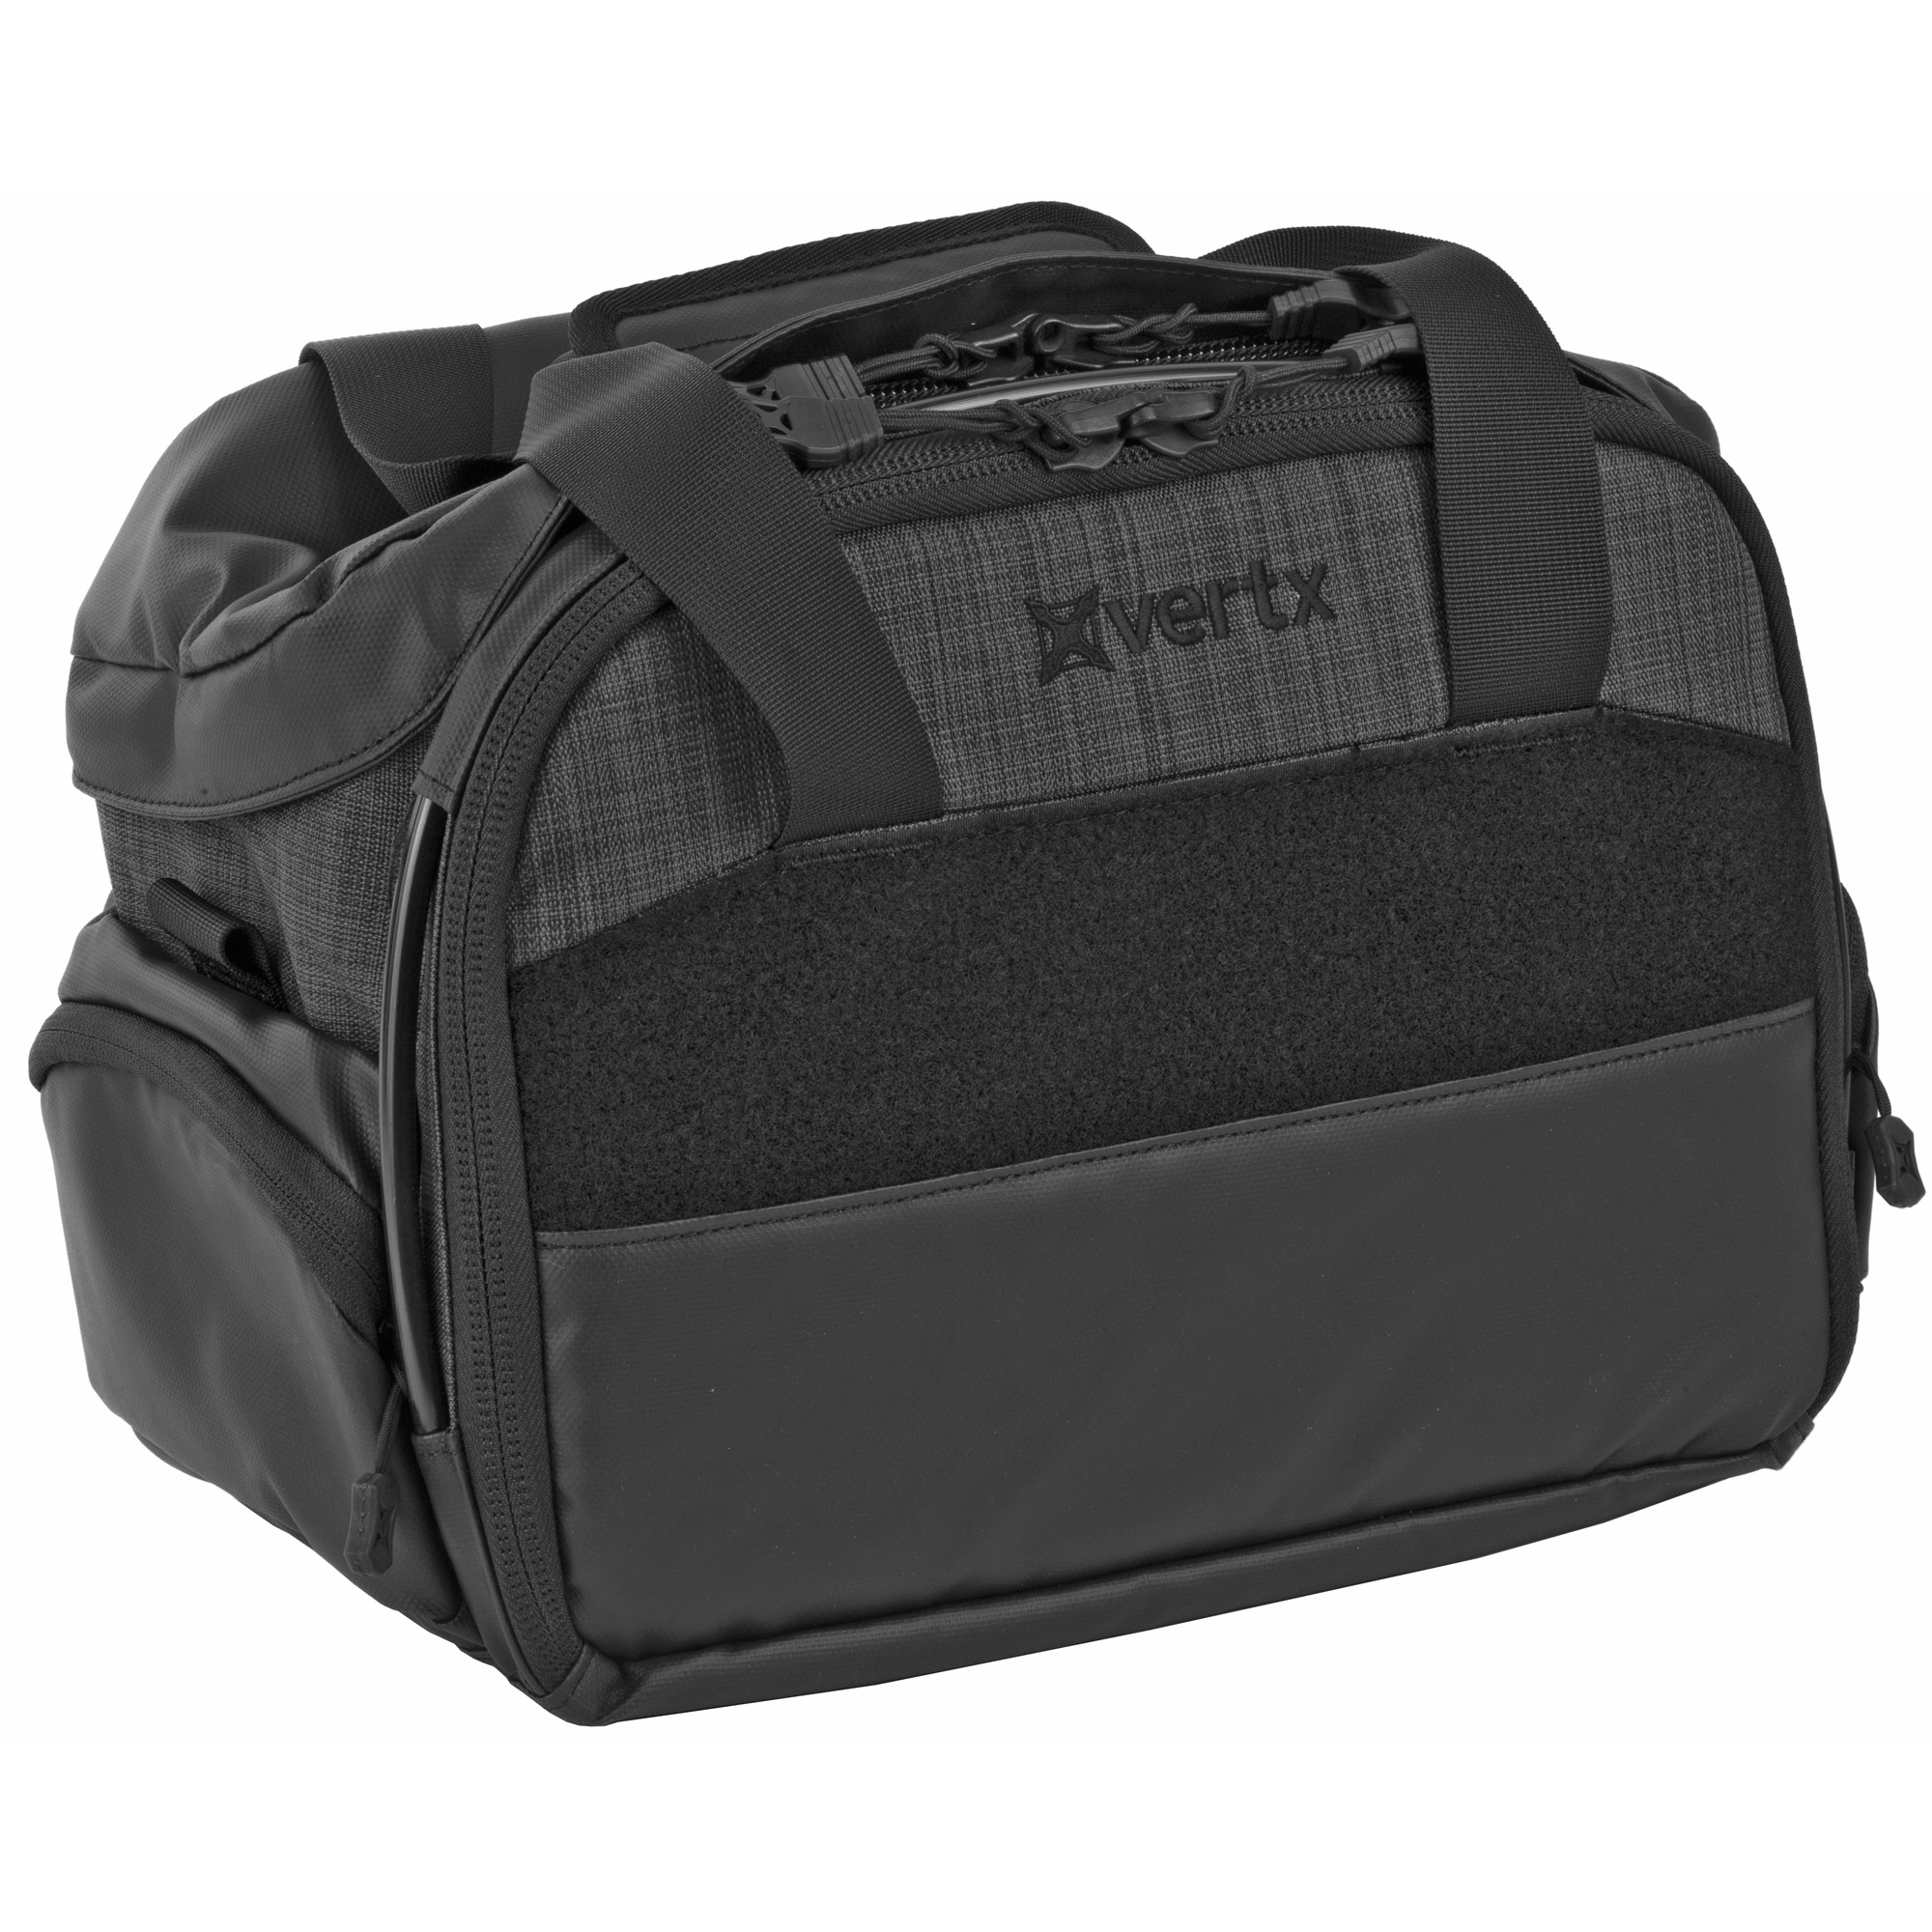 Vertx Cof Light Range Bag Heather Black